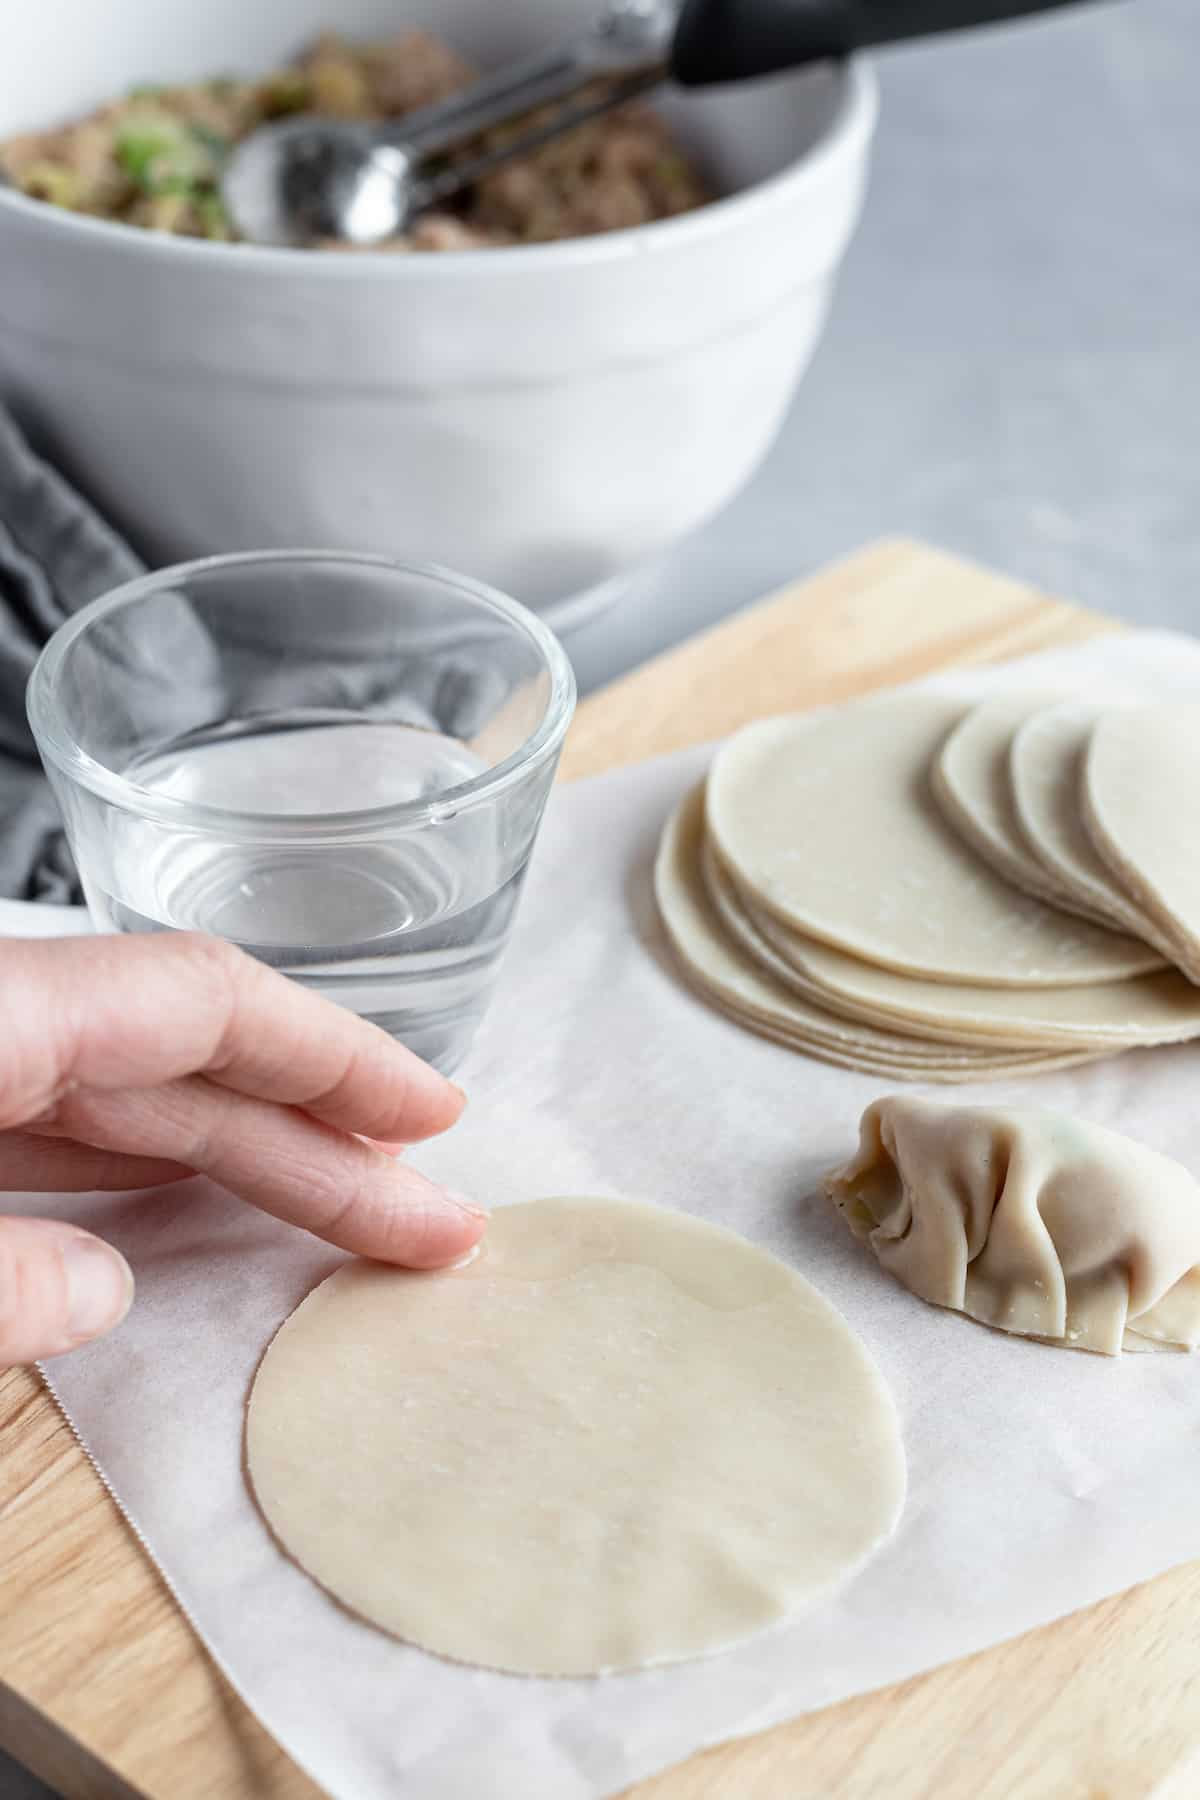 Water Being Rubbed on a Round Asian Dumpling Wrapper